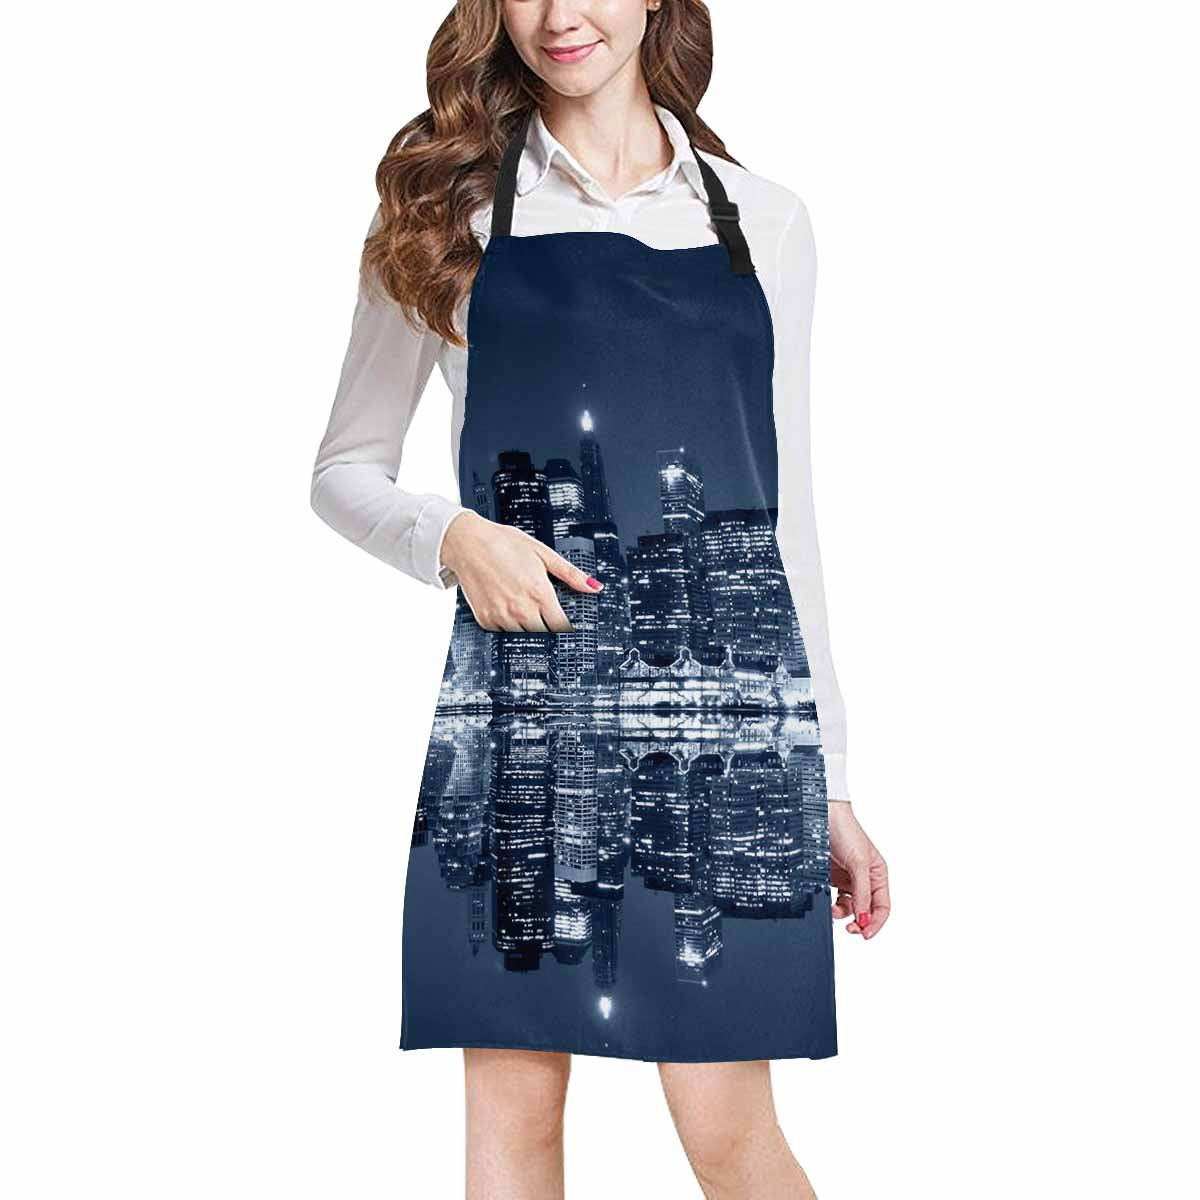 InterestPrint Manhattan at Night New York City View from Brooklyn Kitchen Apron - Mens and Womens Bib Apron - Adjustable with Pockets for Cooking Baking Gardening, Large Size by InterestPrint (Image #1)